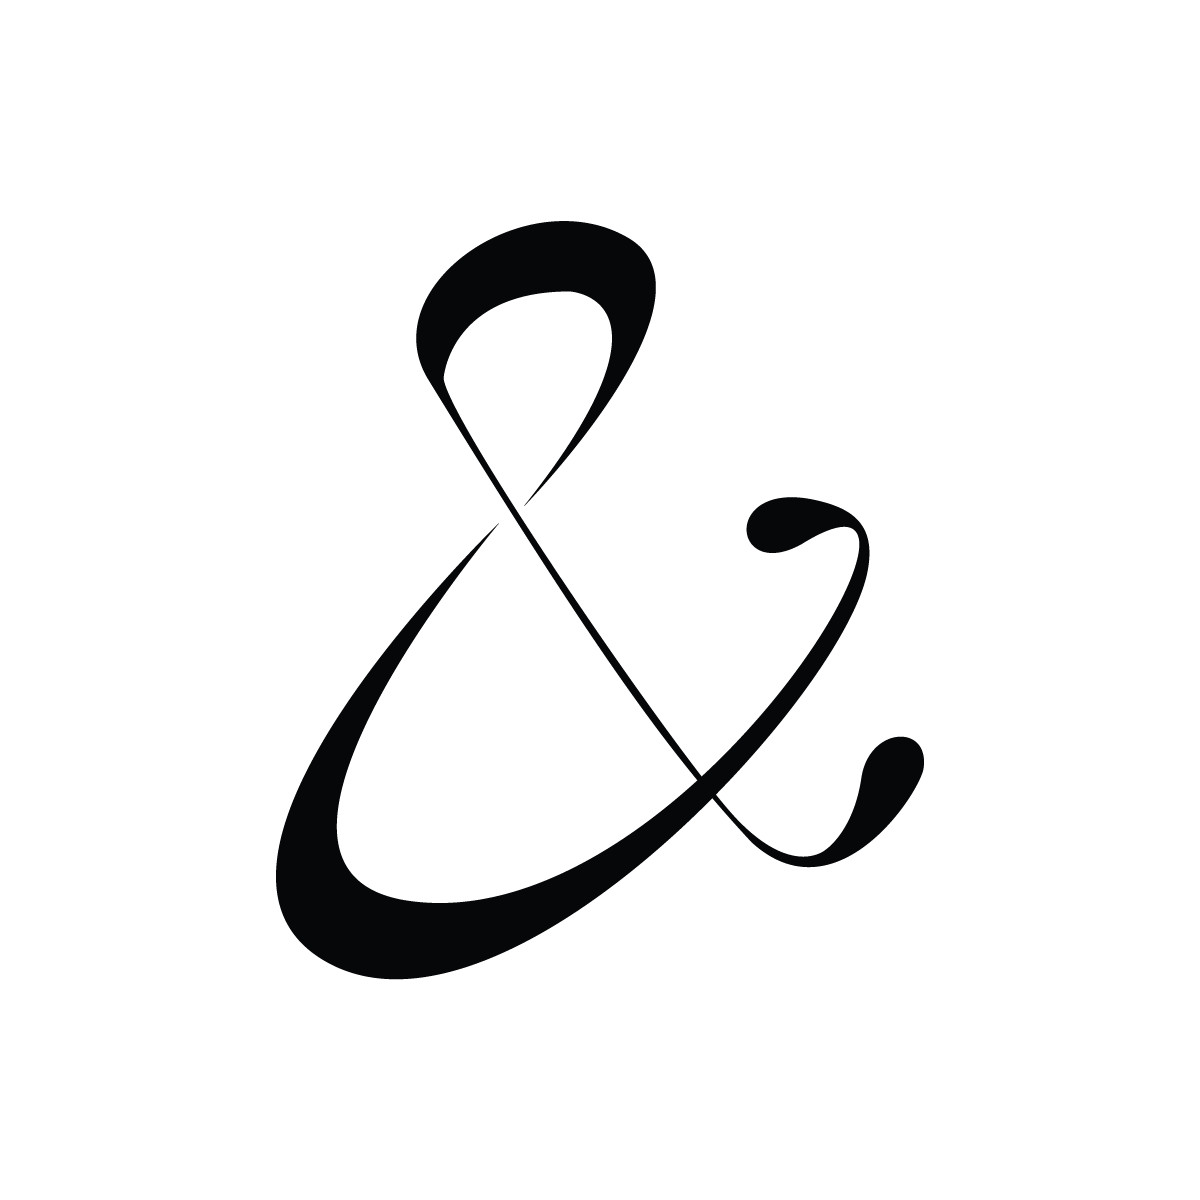 HD_Ampersand-1254-25